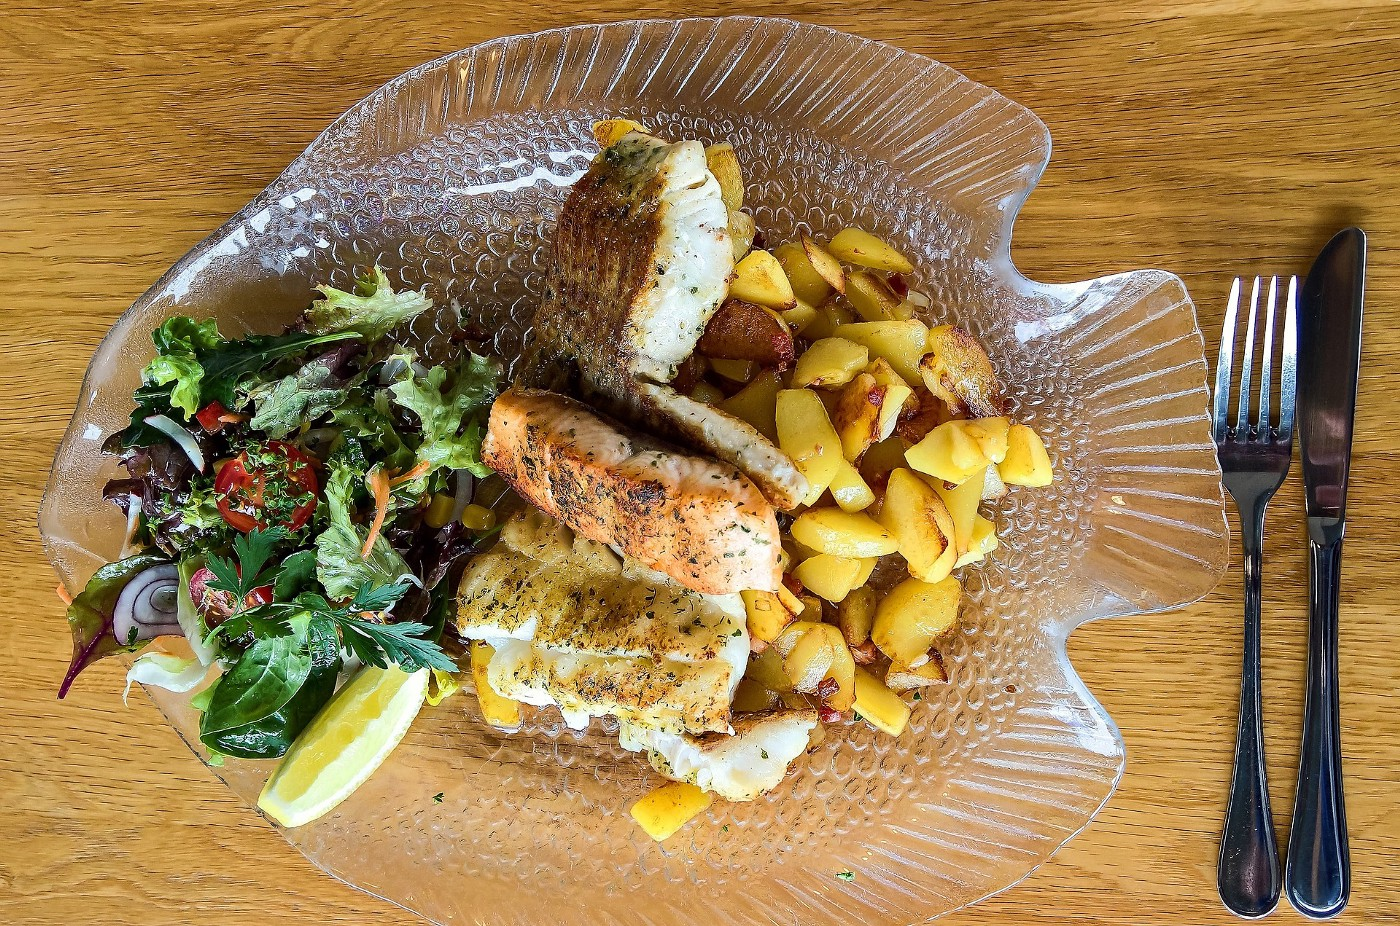 What To Serve For Your Dinner Party's Main Course - Fish